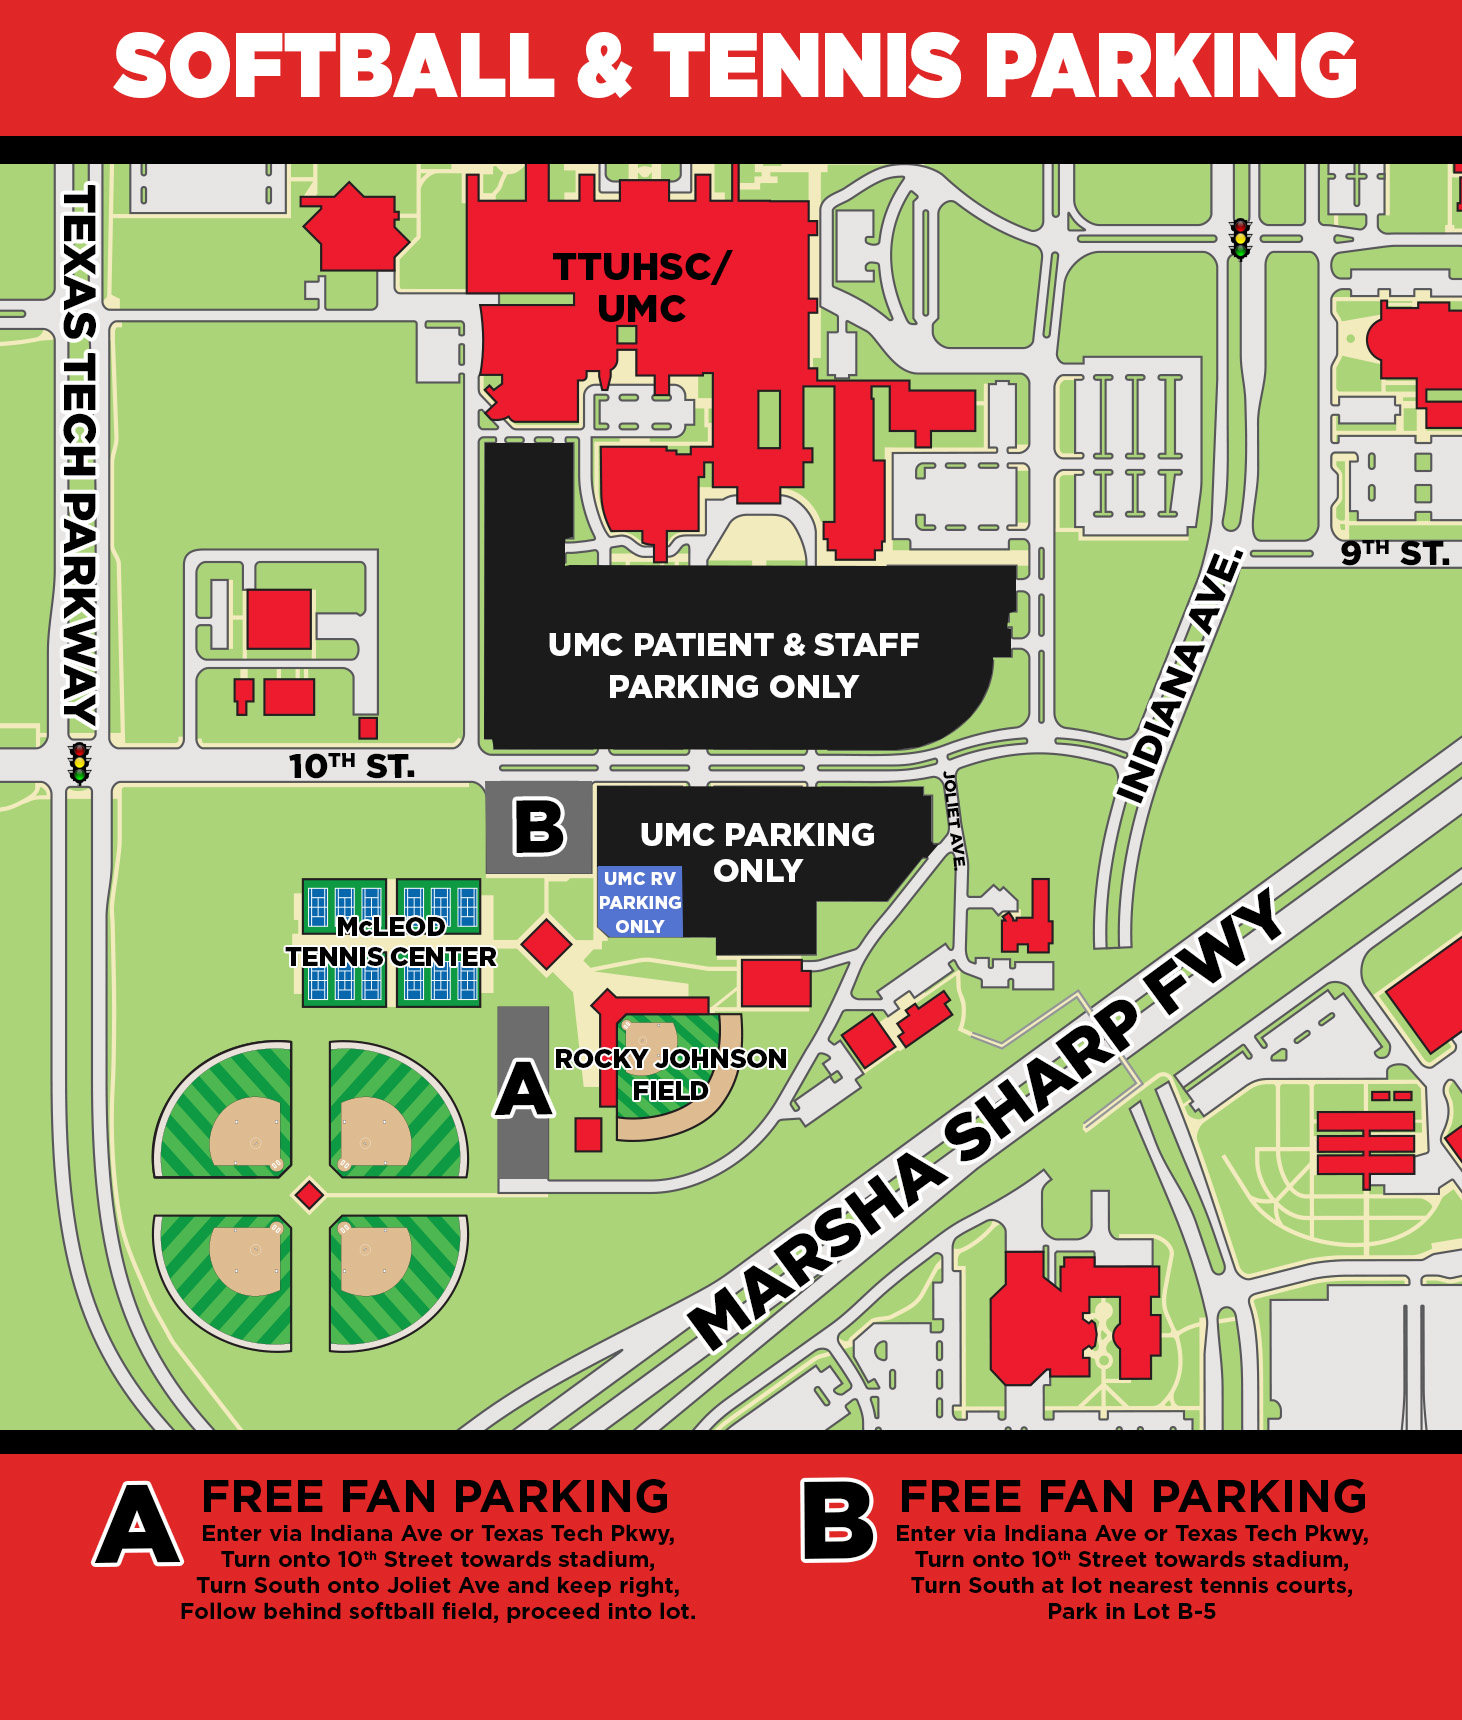 Softball Parking Information - Texas Tech University - Texas Tech ...